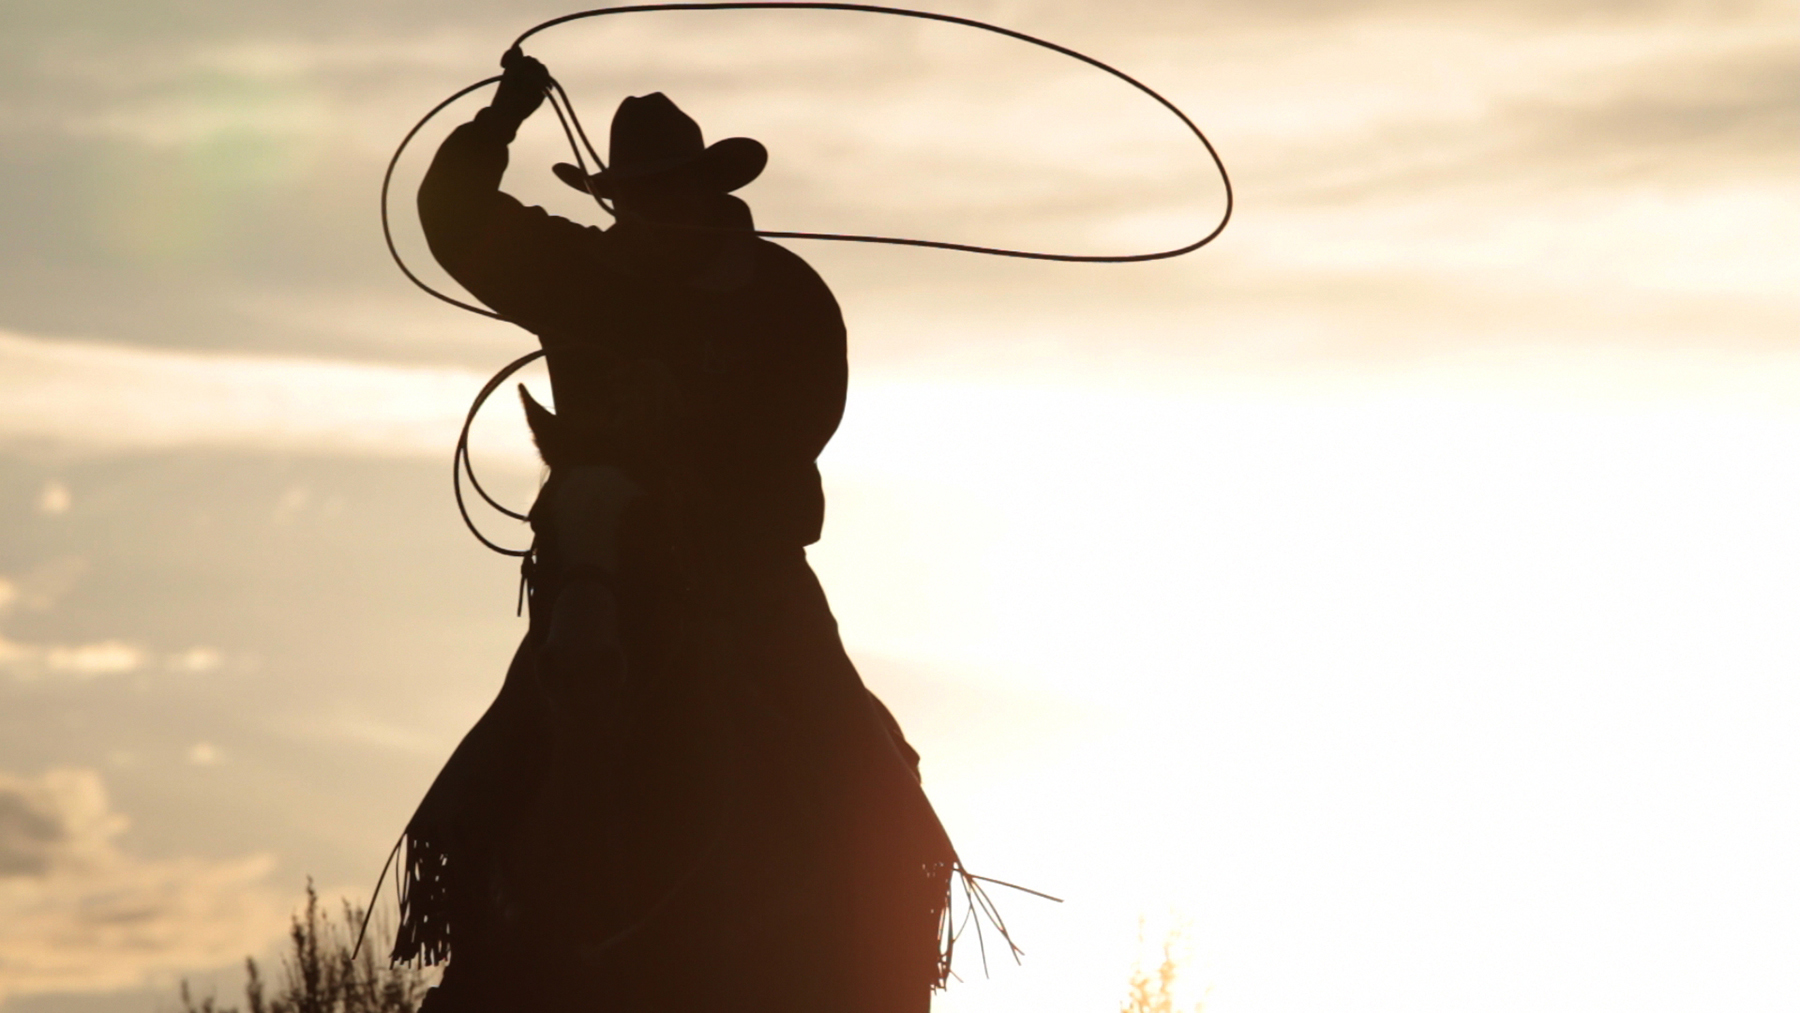 Silhouette of cowboy on horse swinging lariat